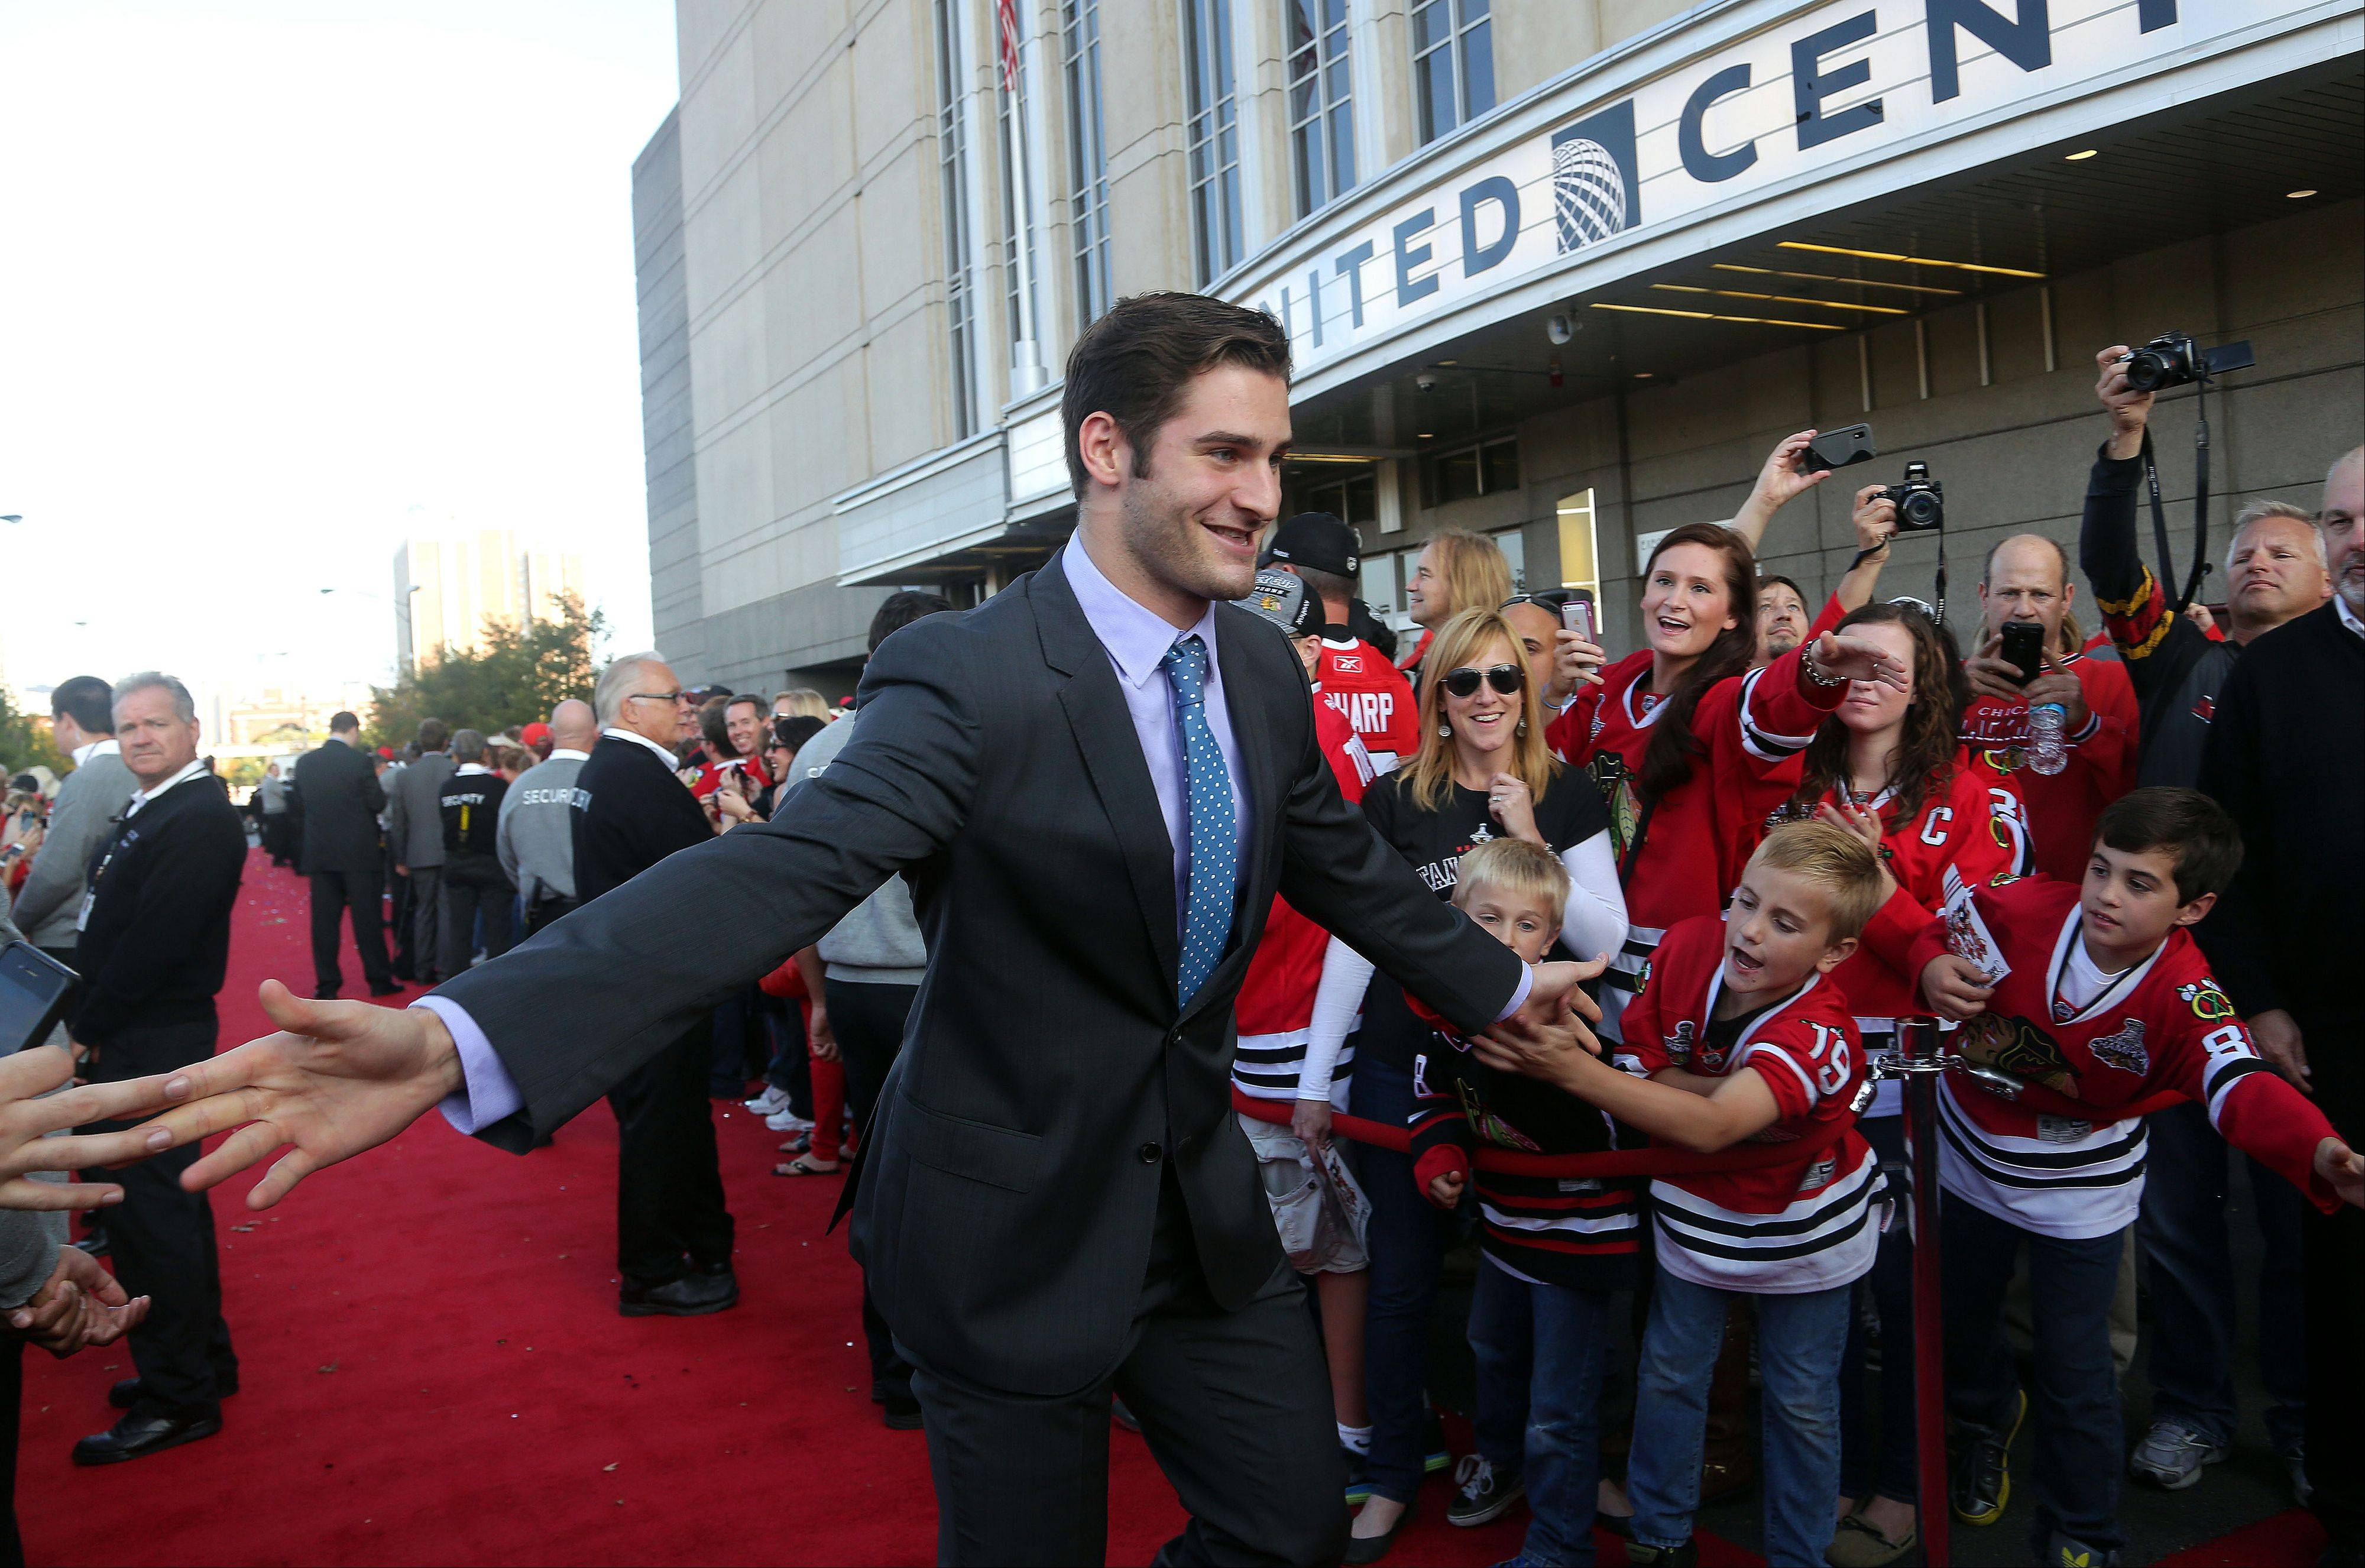 Chicago Blackhawks Brandon Saad high-fives fans.